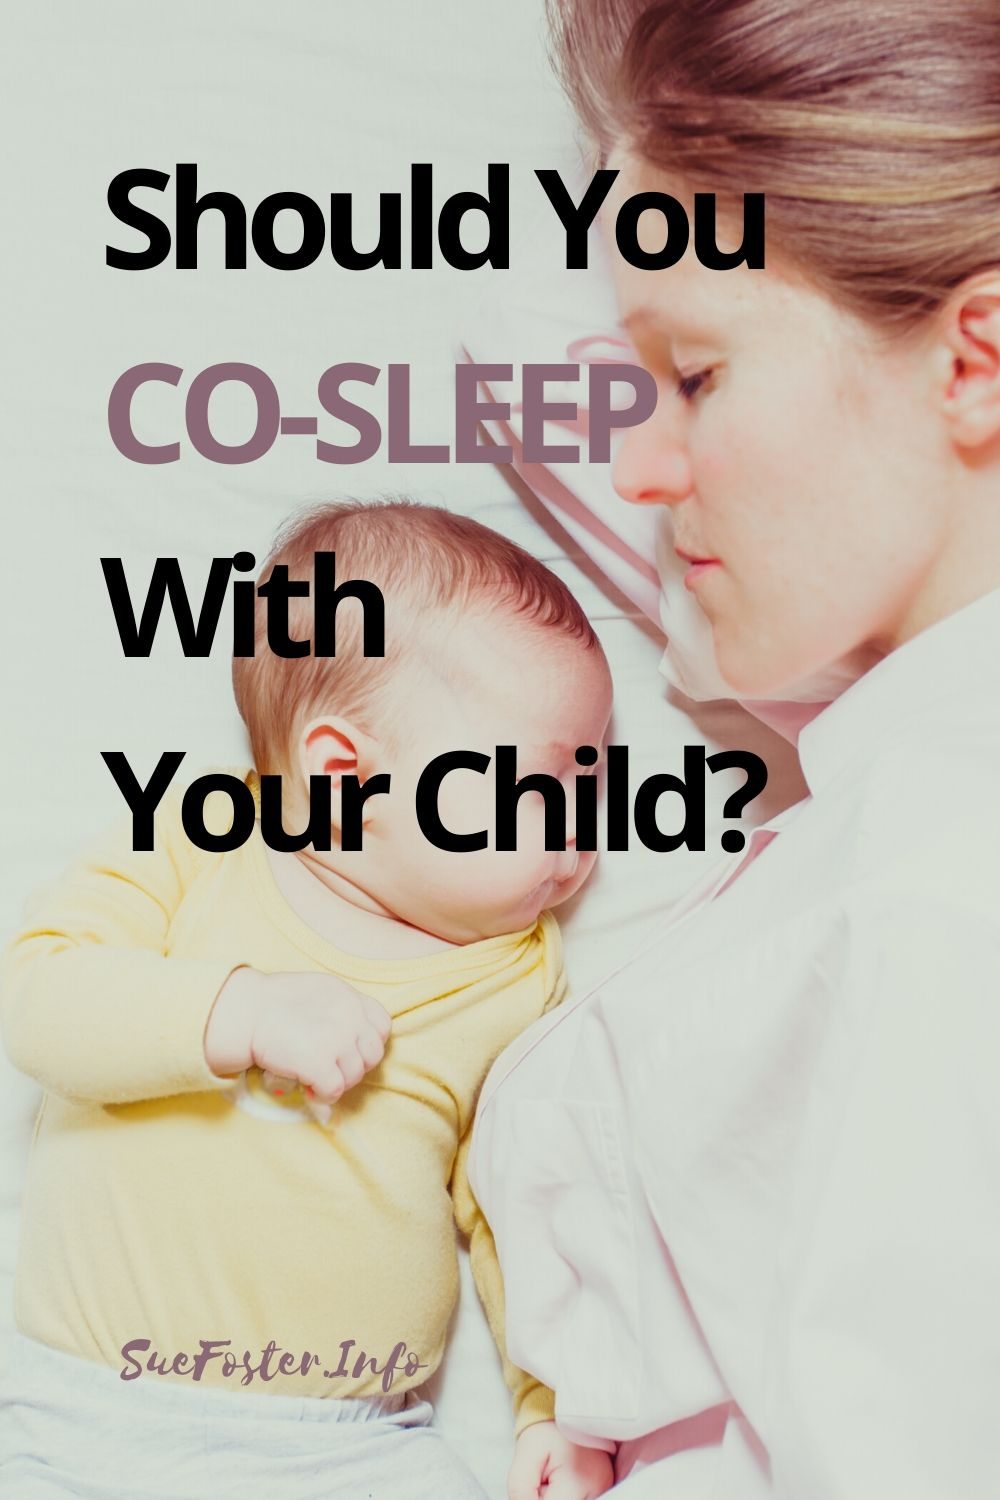 Advantages and disadvantages of co-sleeping with your child.